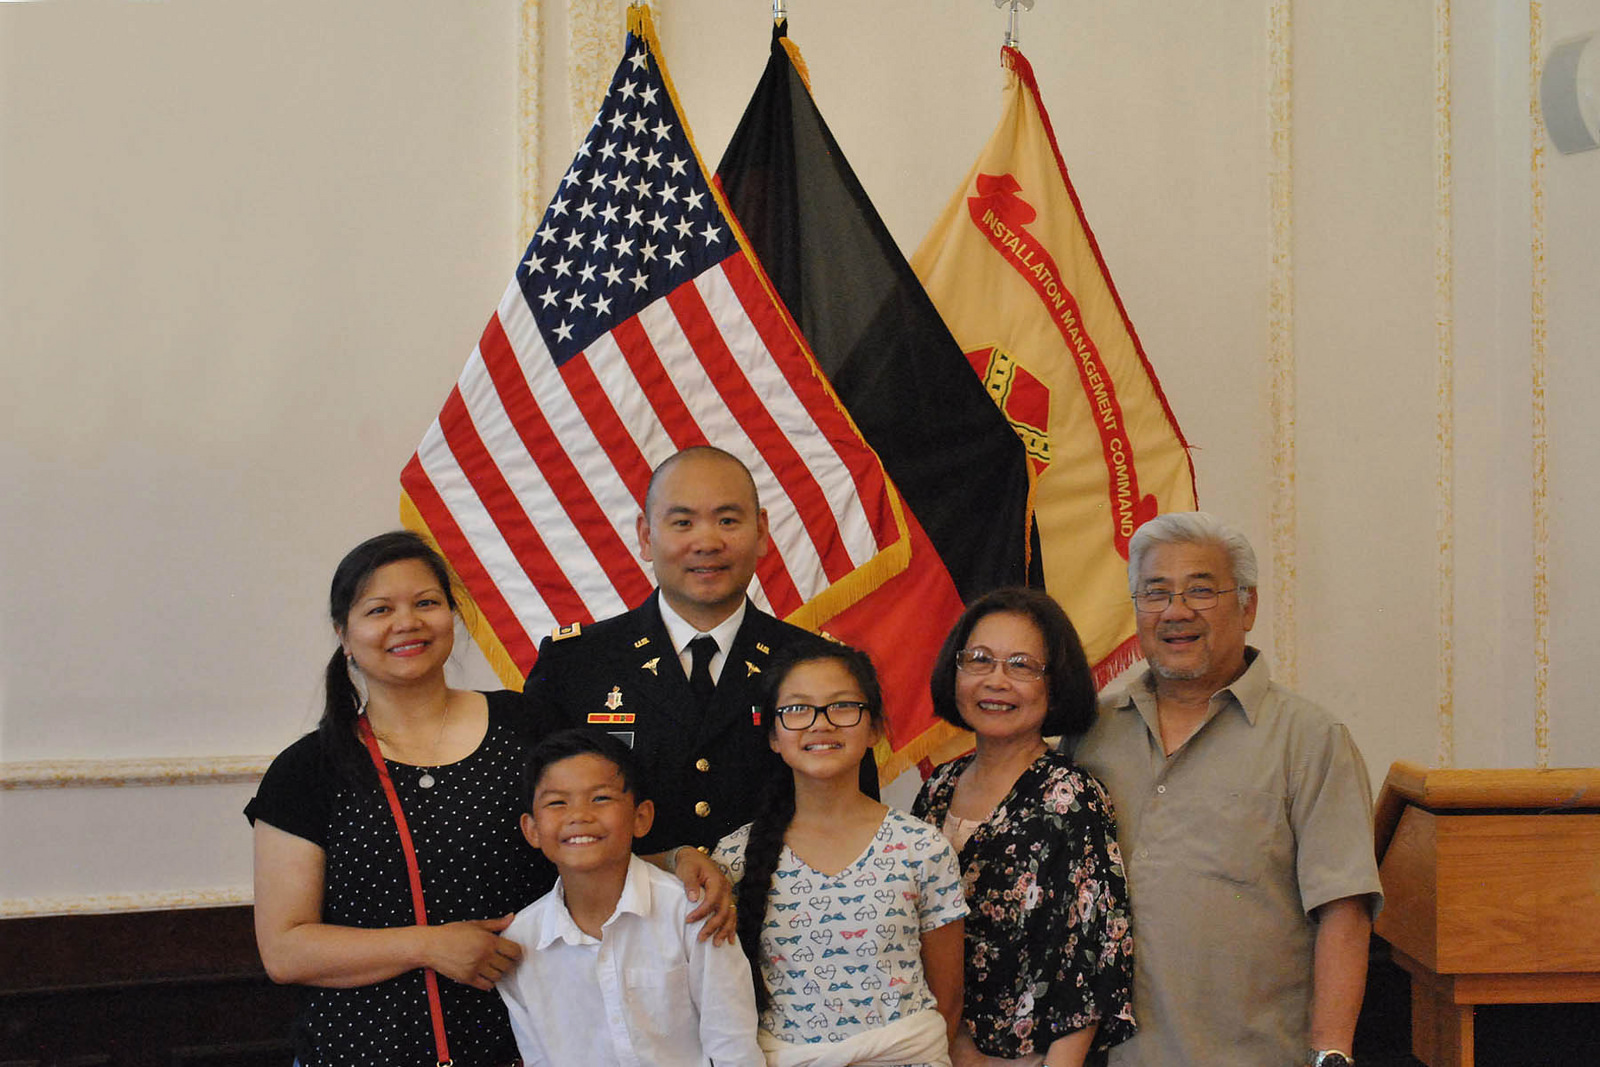 Ansbach celebrates Asian American and Pacific Islander Heritage Month